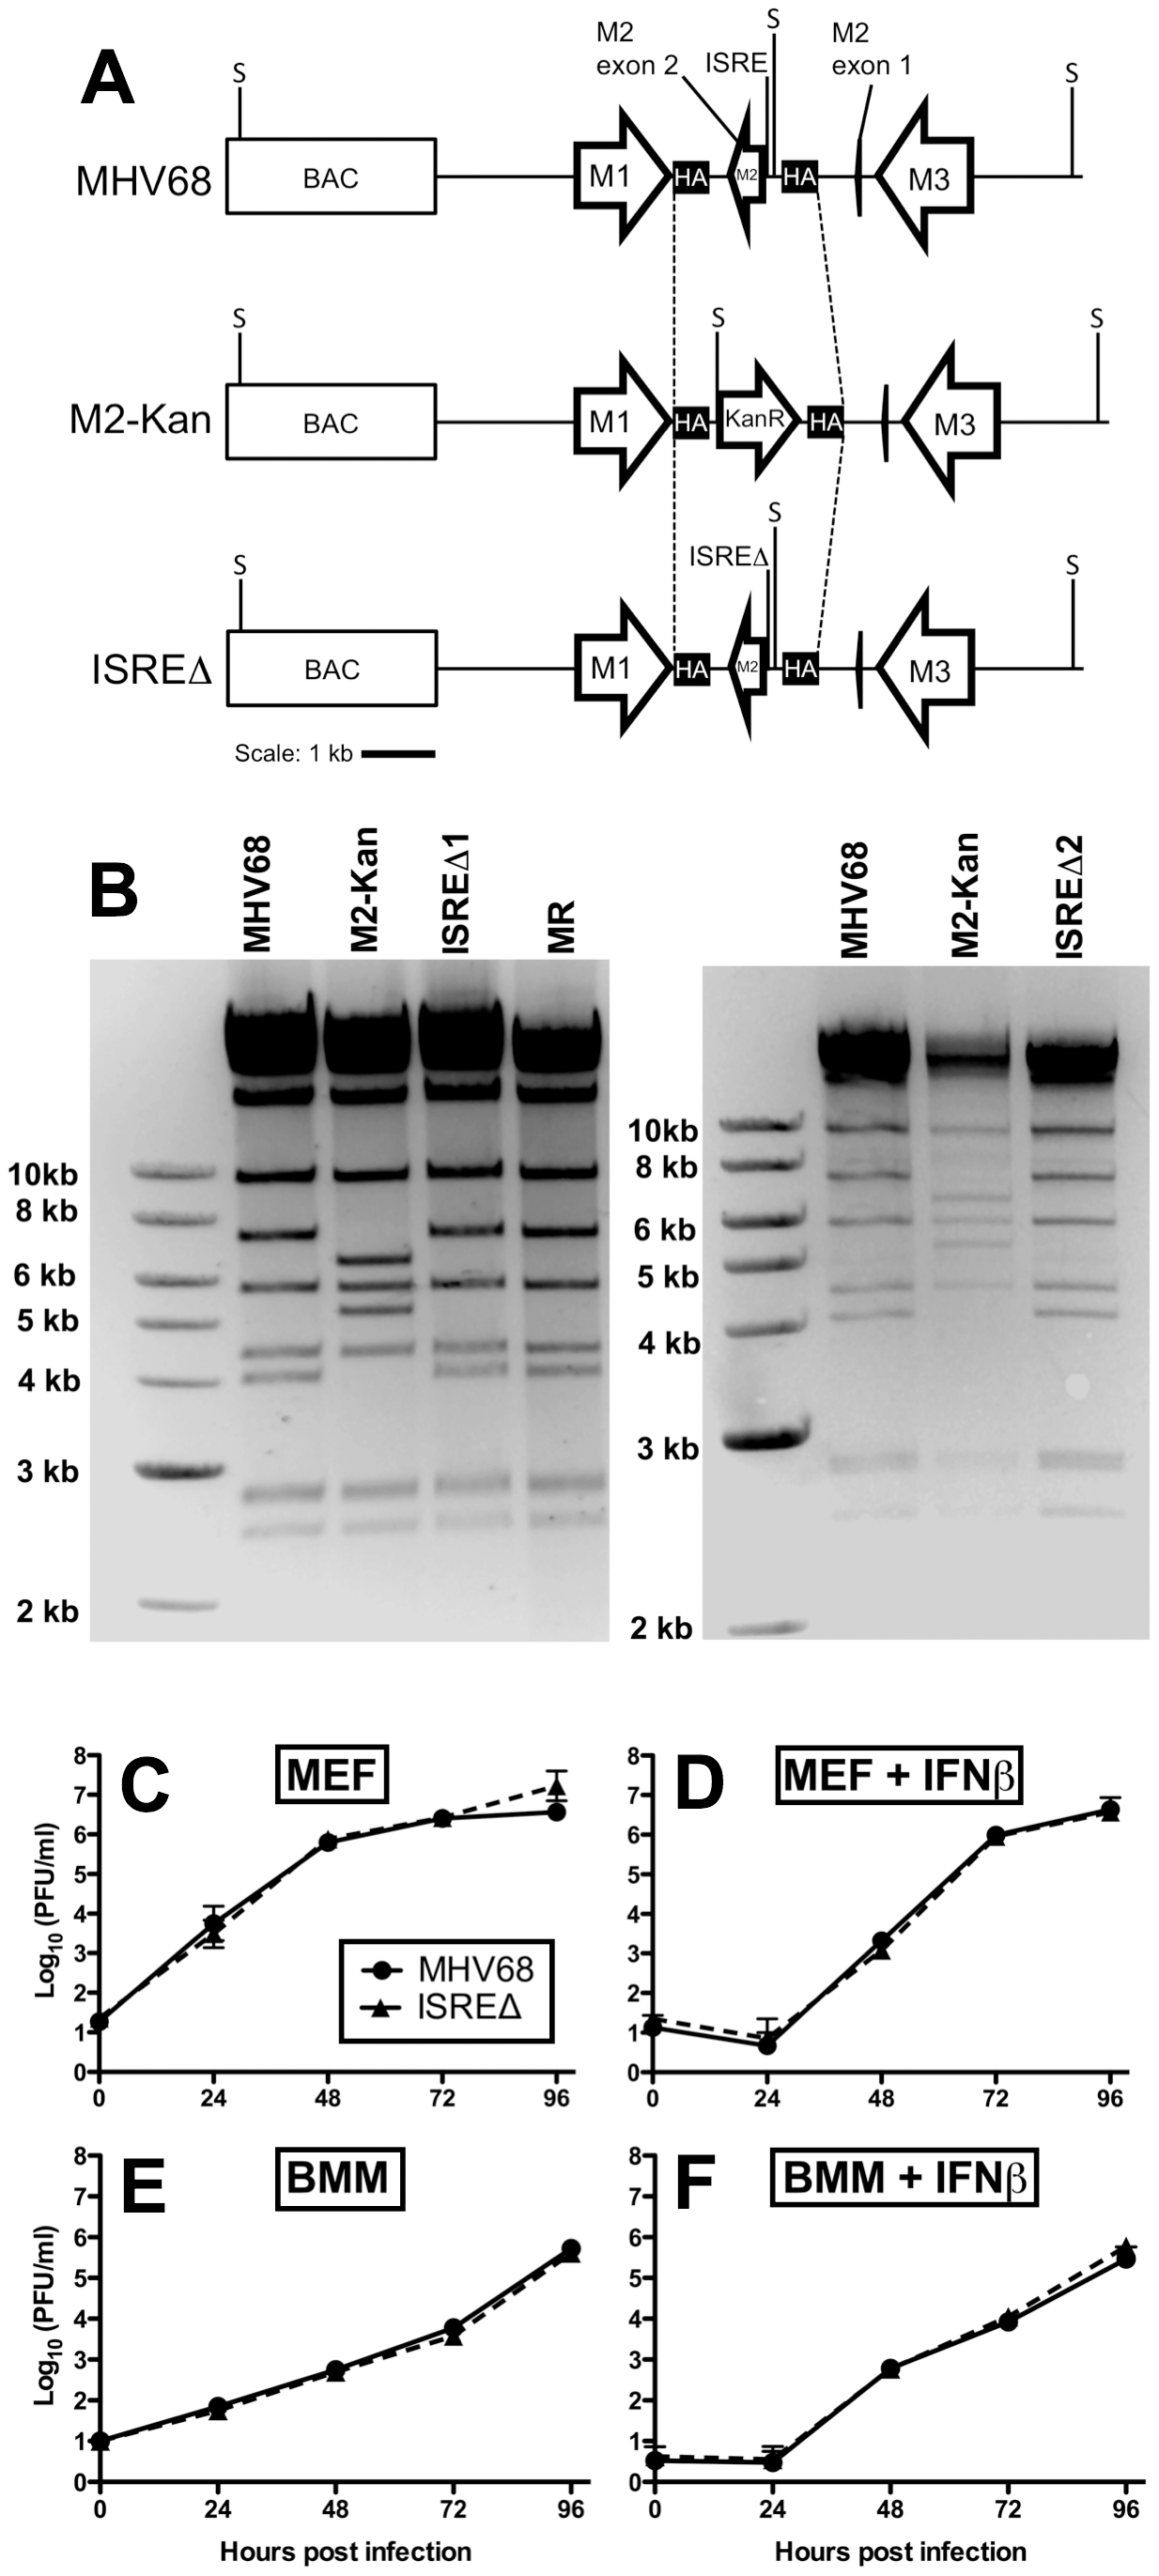 Generation and characterization of MHV68 lacking the M2 ISRE (ISREΔ).